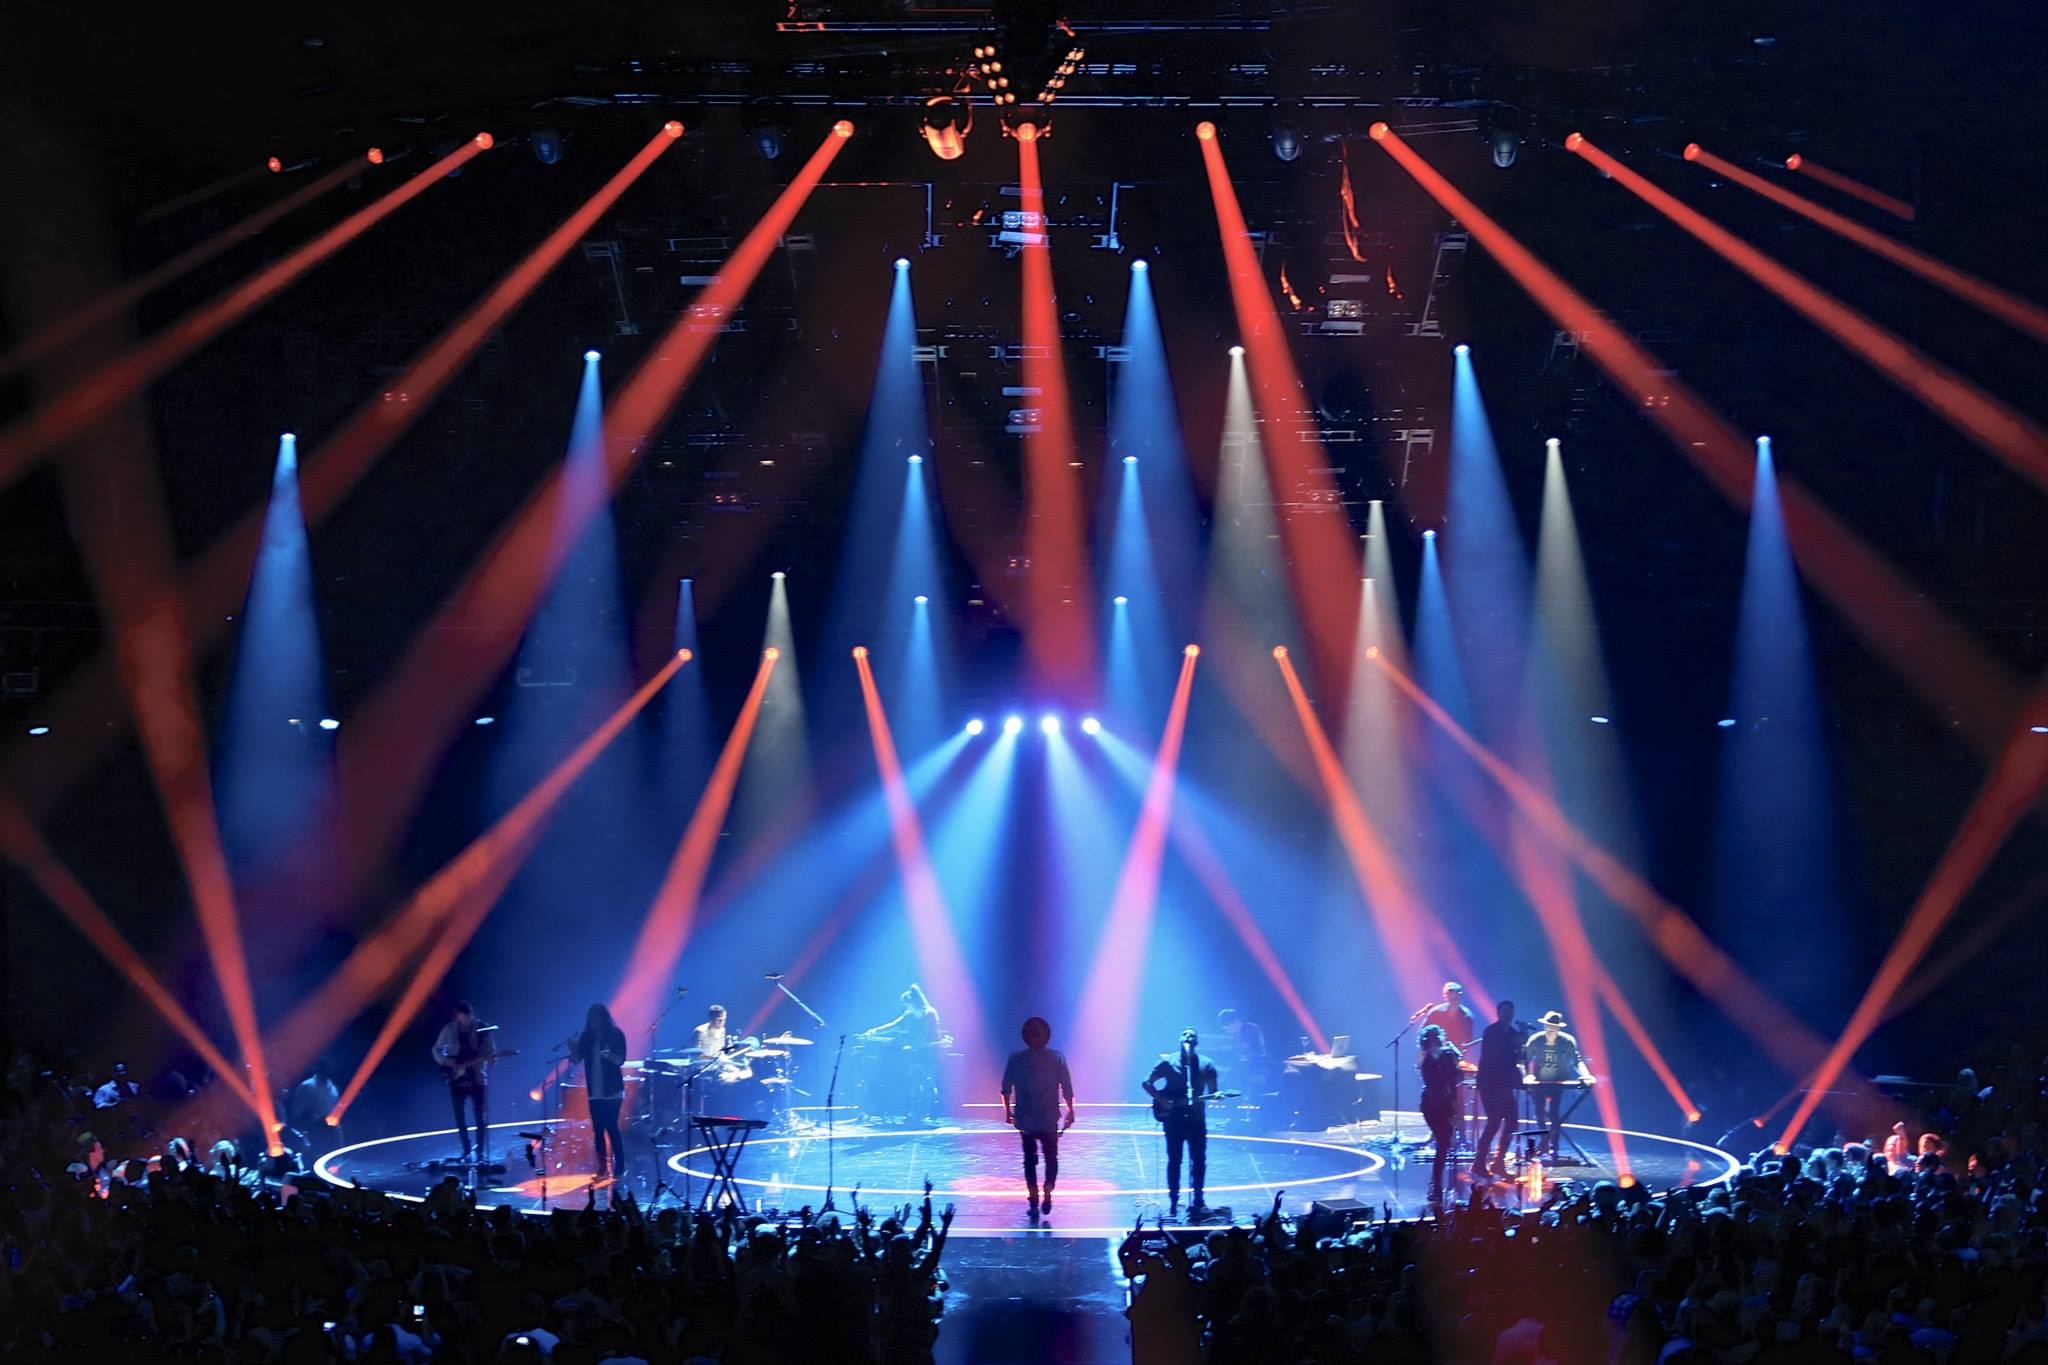 Hillsong united let hope rise la forum u u lighting design